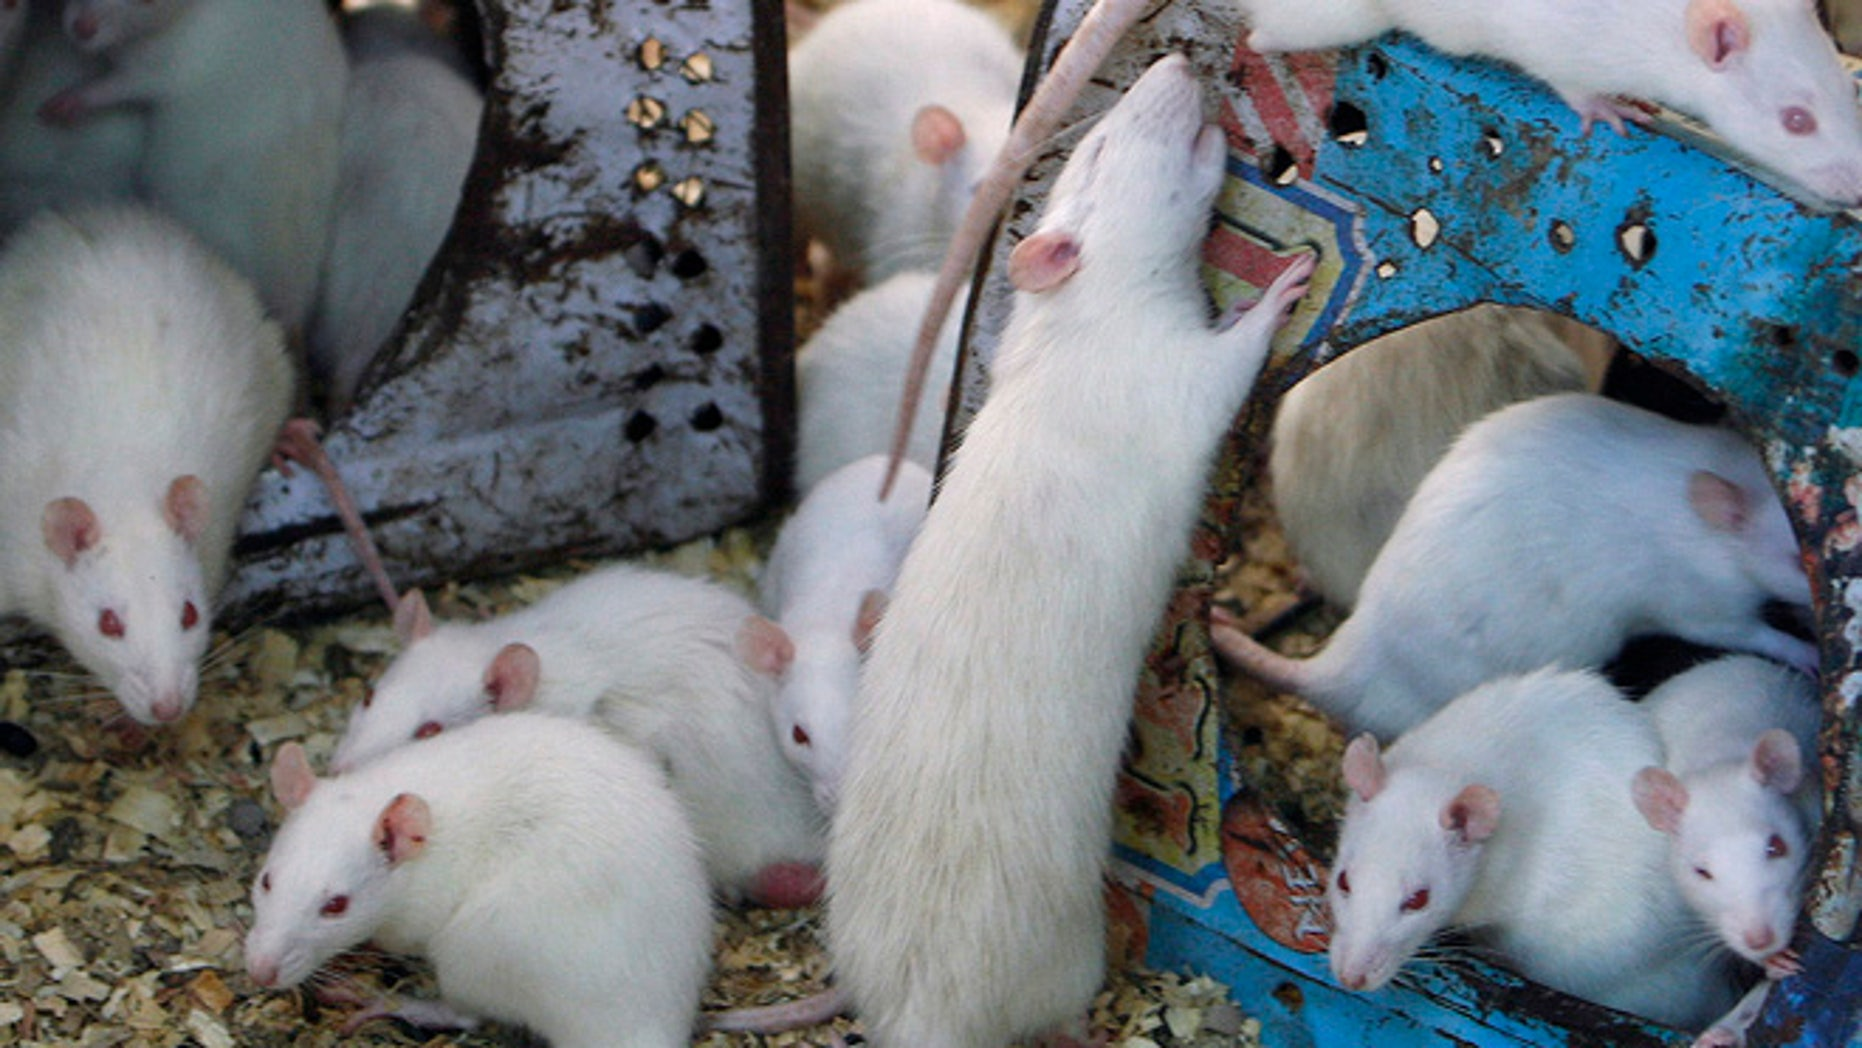 June 27, 2009: White mice crawl around tins surrounded by sawdust.